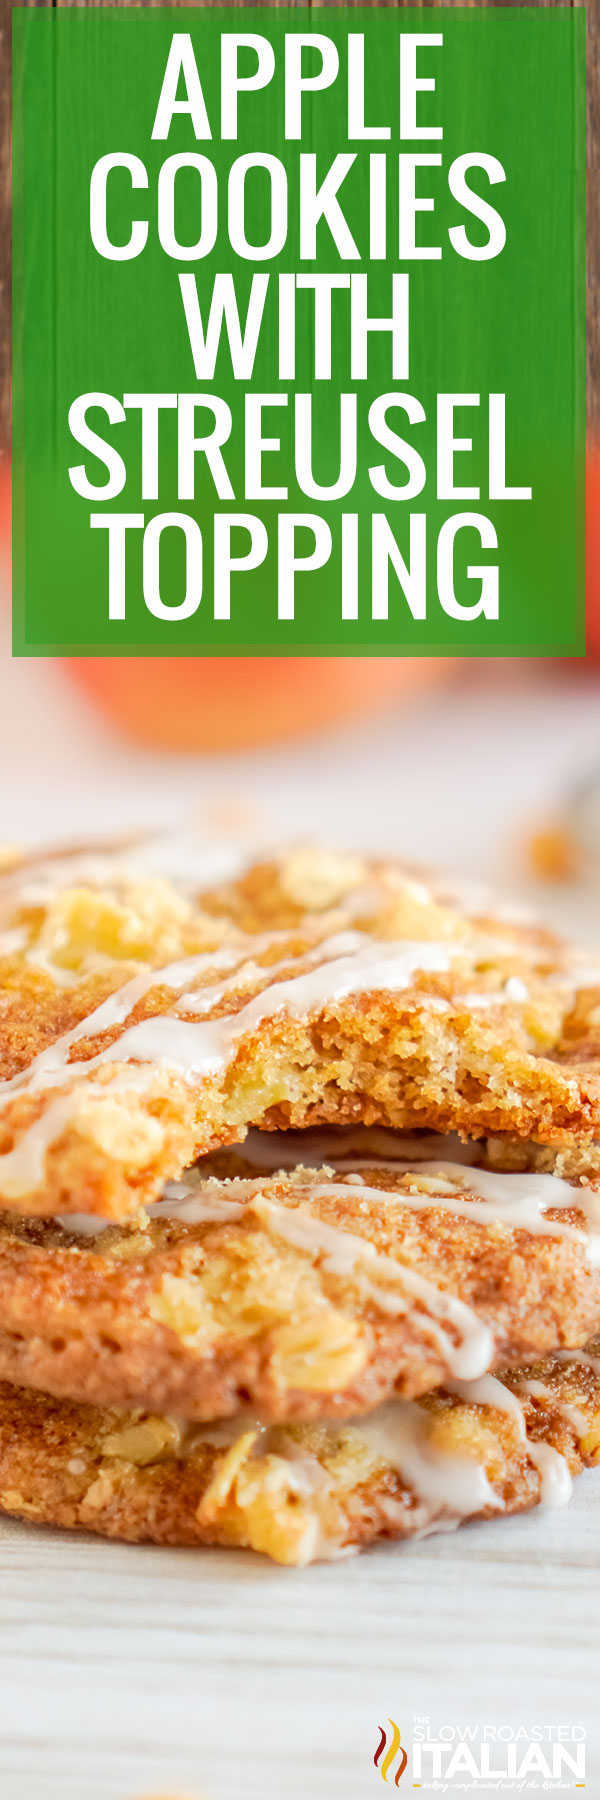 collage photo (title text): Apple cookies with streusel